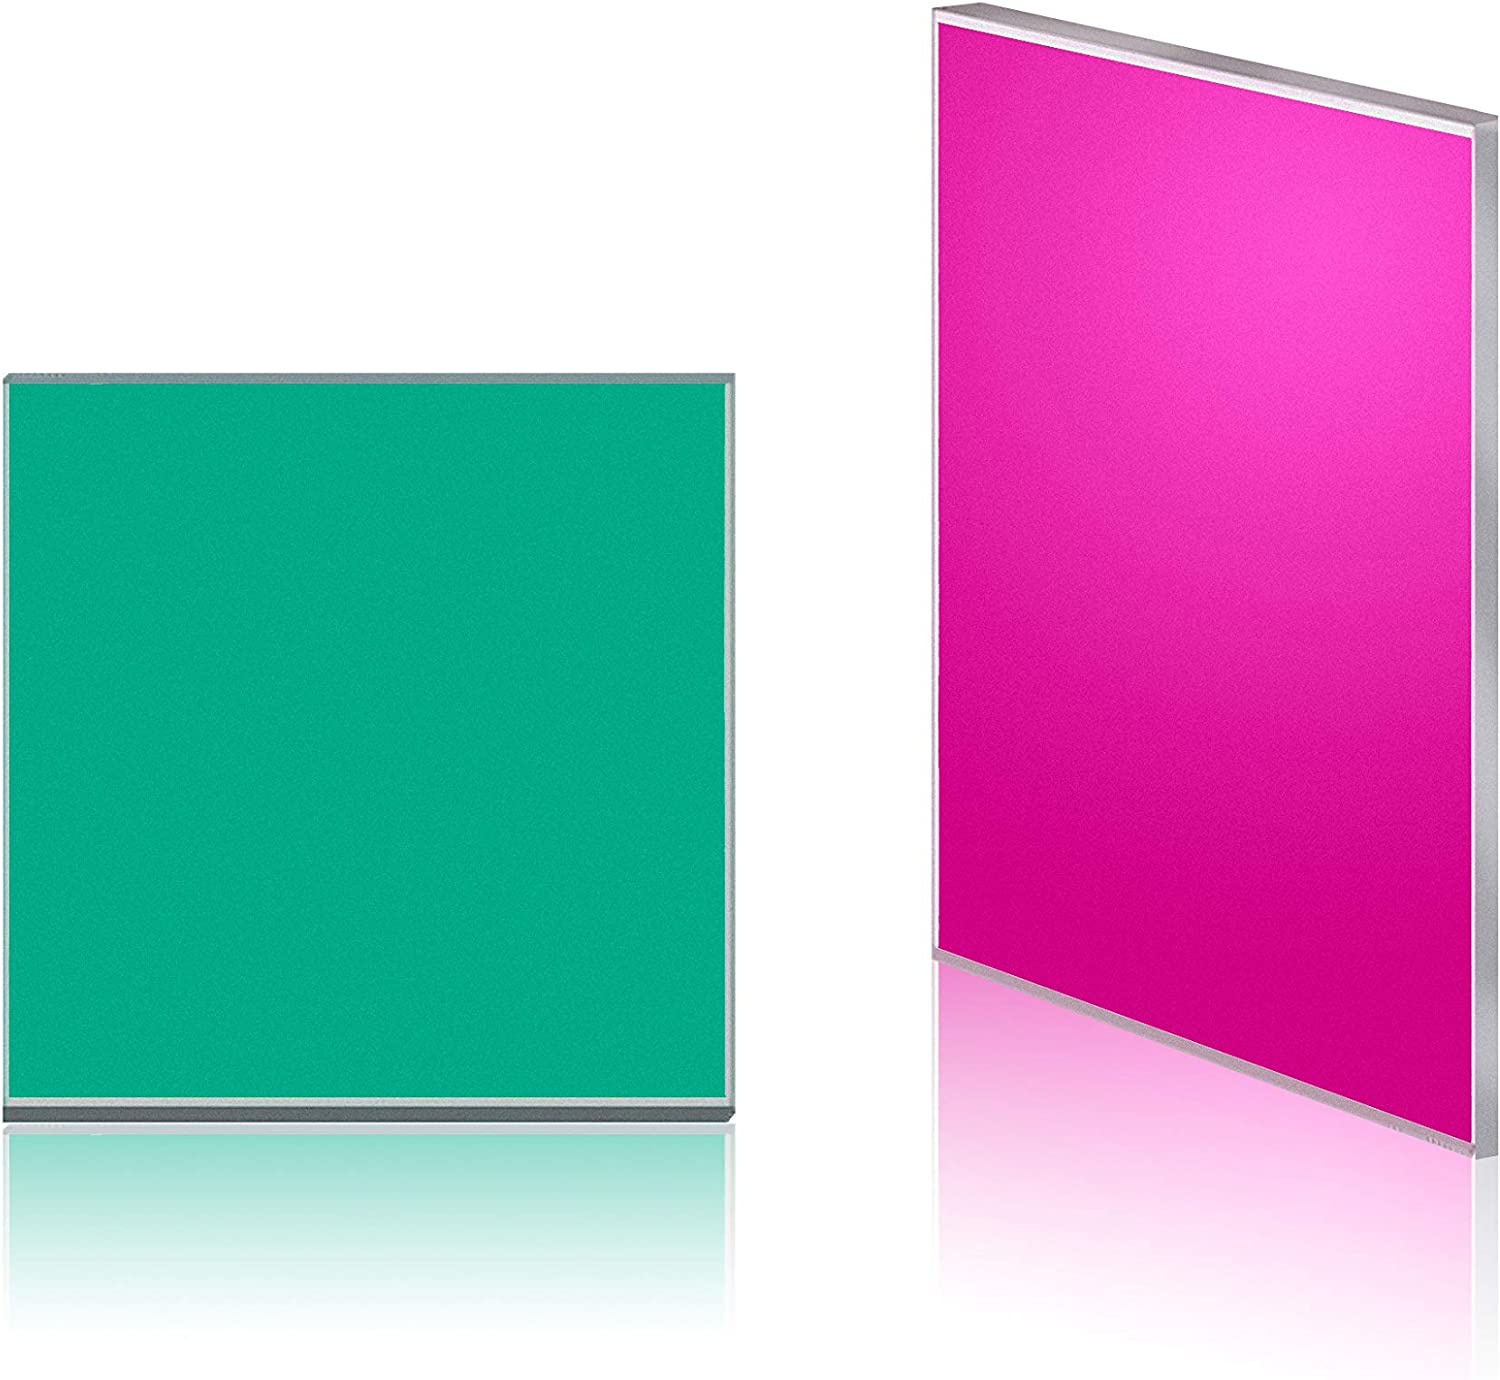 Quanmin 2pcs Very popular! 15mm Manufacturer OFFicial shop Square Featuring a Cut-Off IR 710nm wavelength